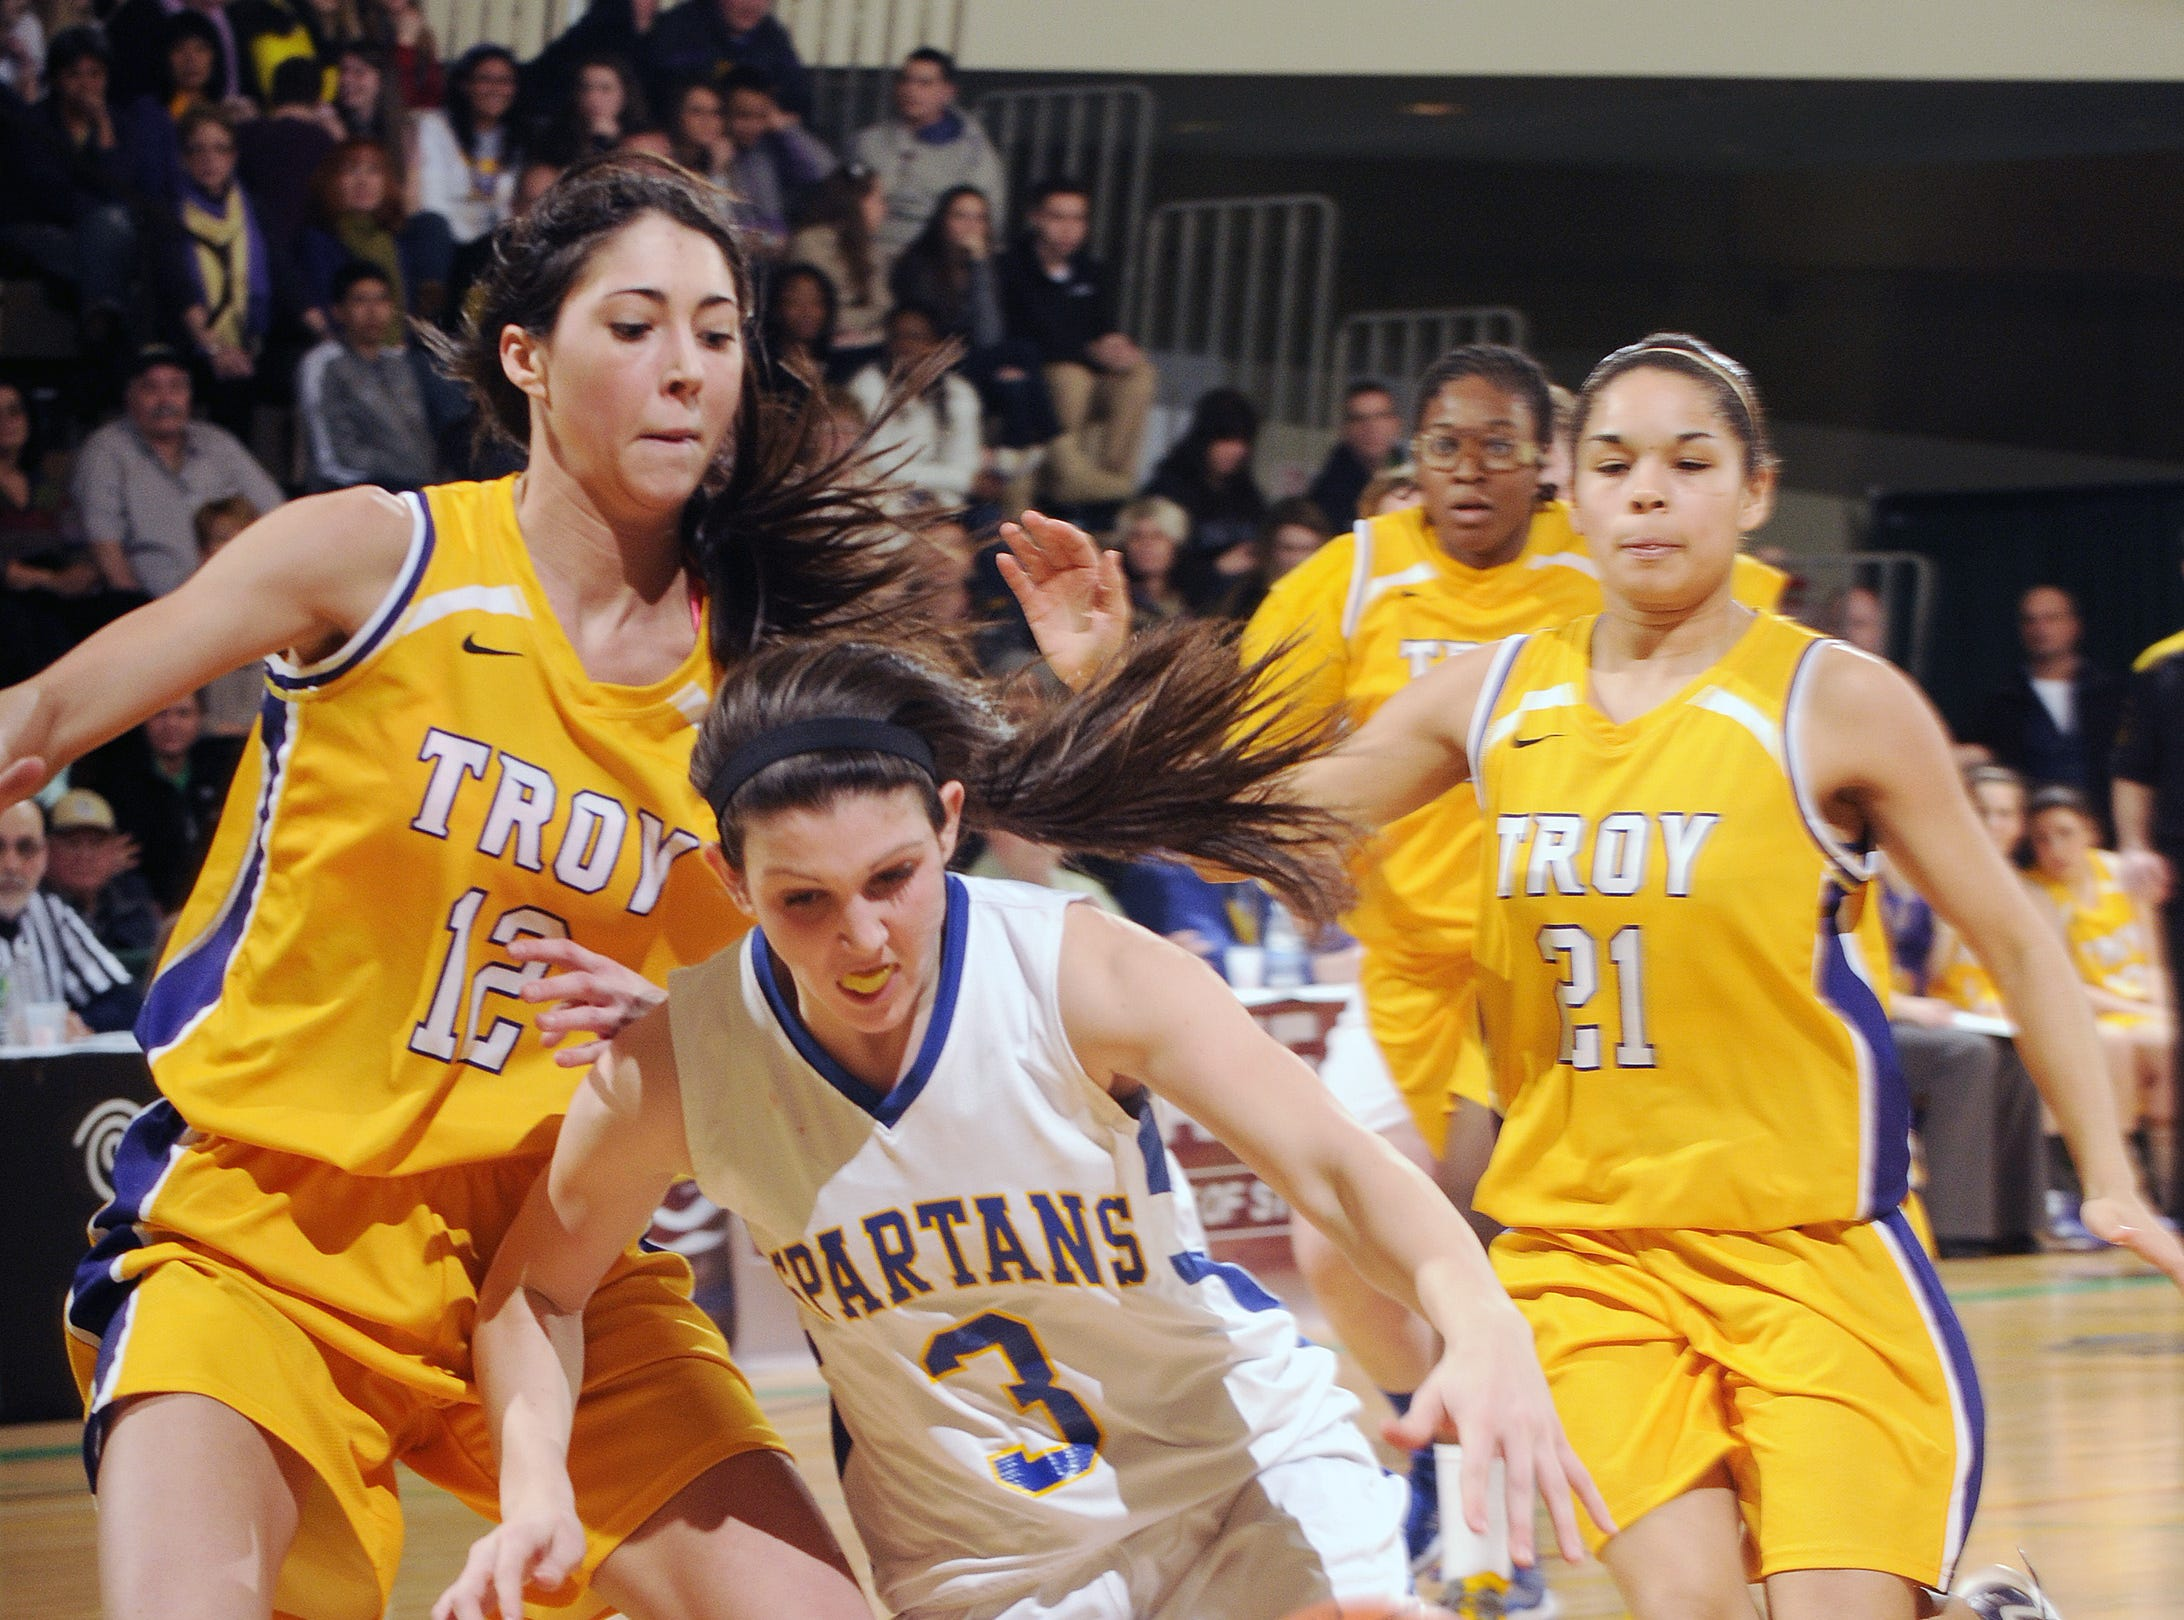 2013: Maine-Endwell's Victoria Dean, 3, drives to the rim Saturday in the state Class A girls basketball final in Troy. The Spartans lost to Troy, 46-30.